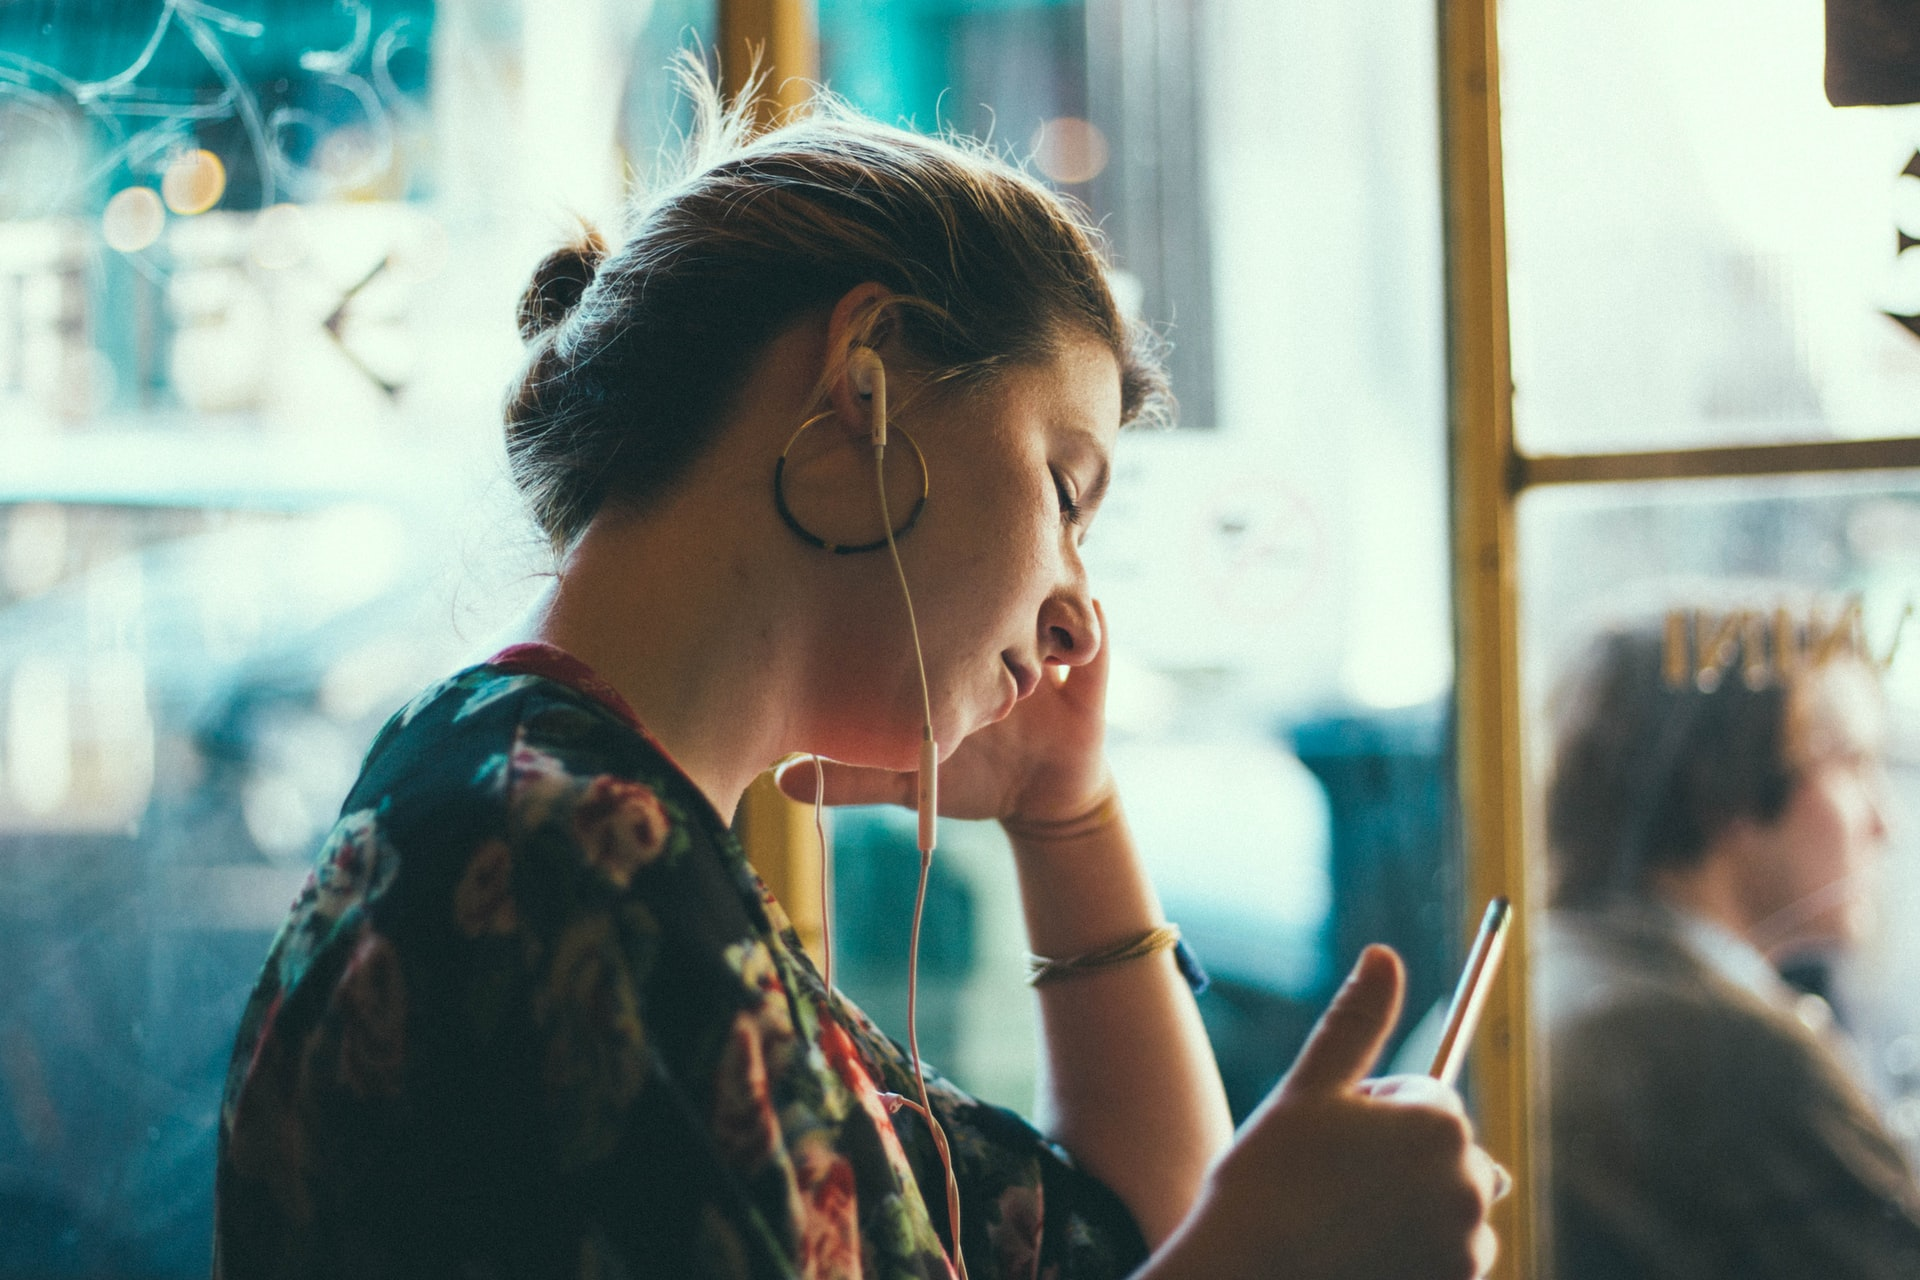 Woman with headphones in, staring into space. Photo courtesy of Siddarth Bhogra on Unsplash.